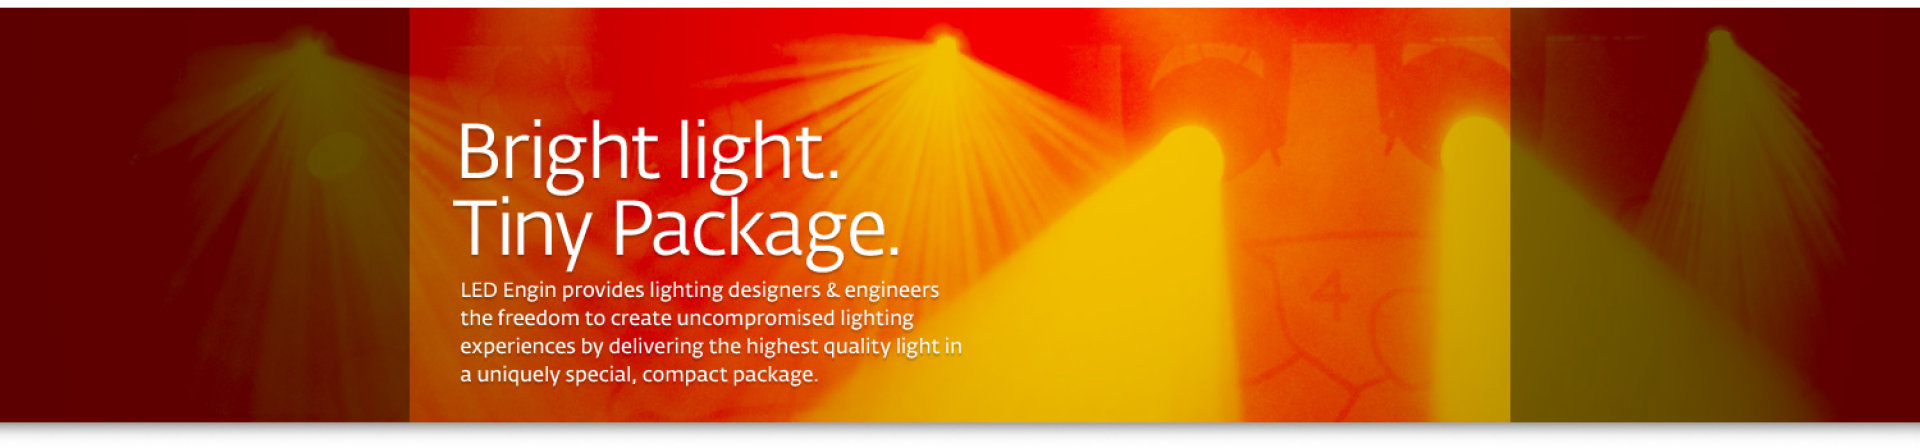 Banner for bright light, tiny packages